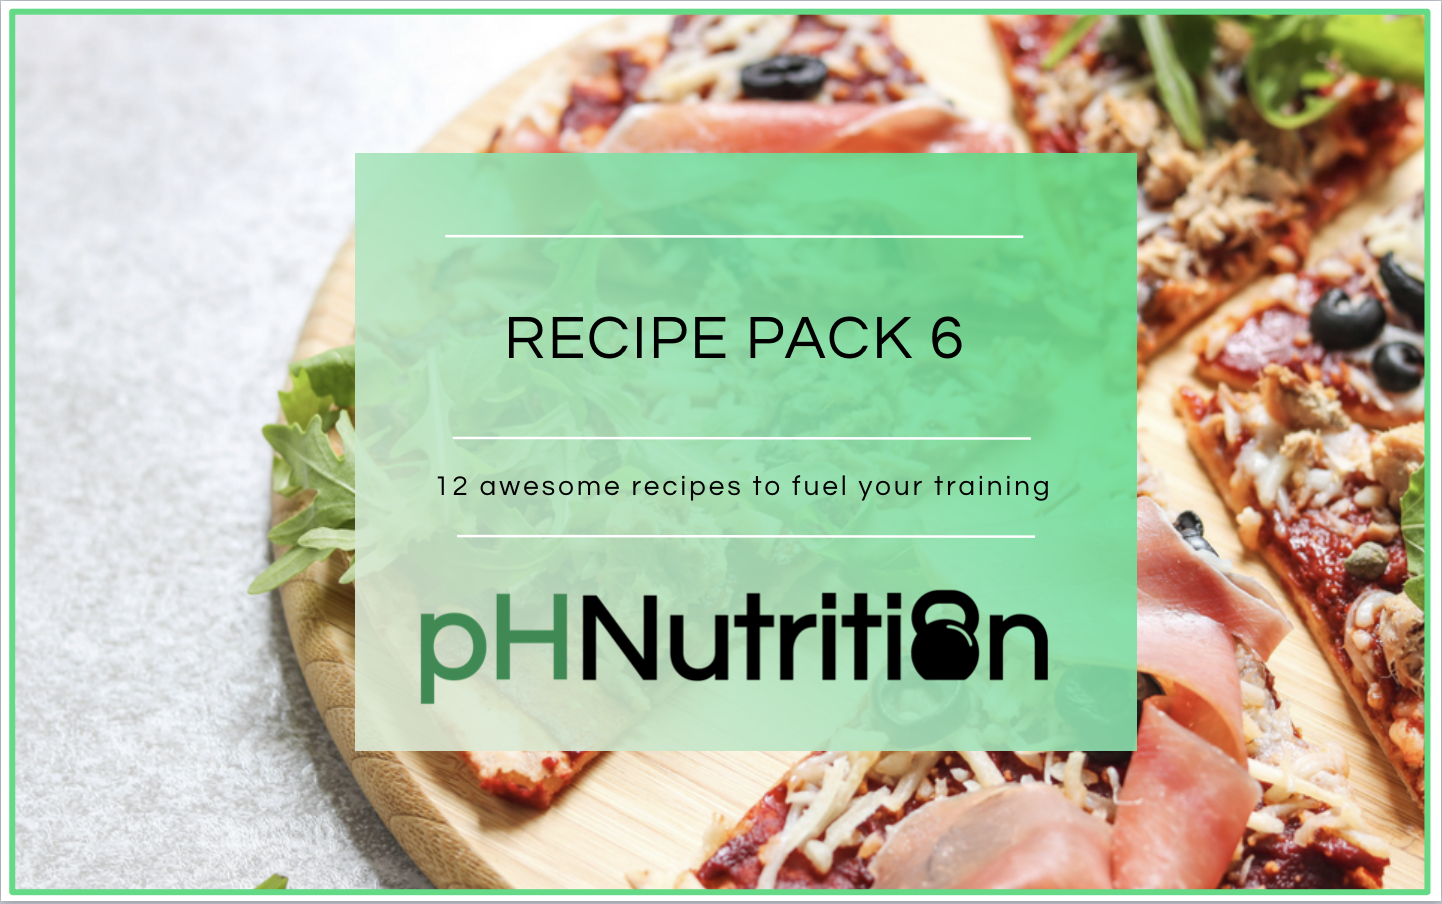 MONTH 6 - 12 awesome recipes to help fuel your training.A few highlights include the spicy chicken drumsticks with Tzatziki, the grilled pork sate and the gluten-free pizza wraps. And what's this......chocolate hummus?!?!